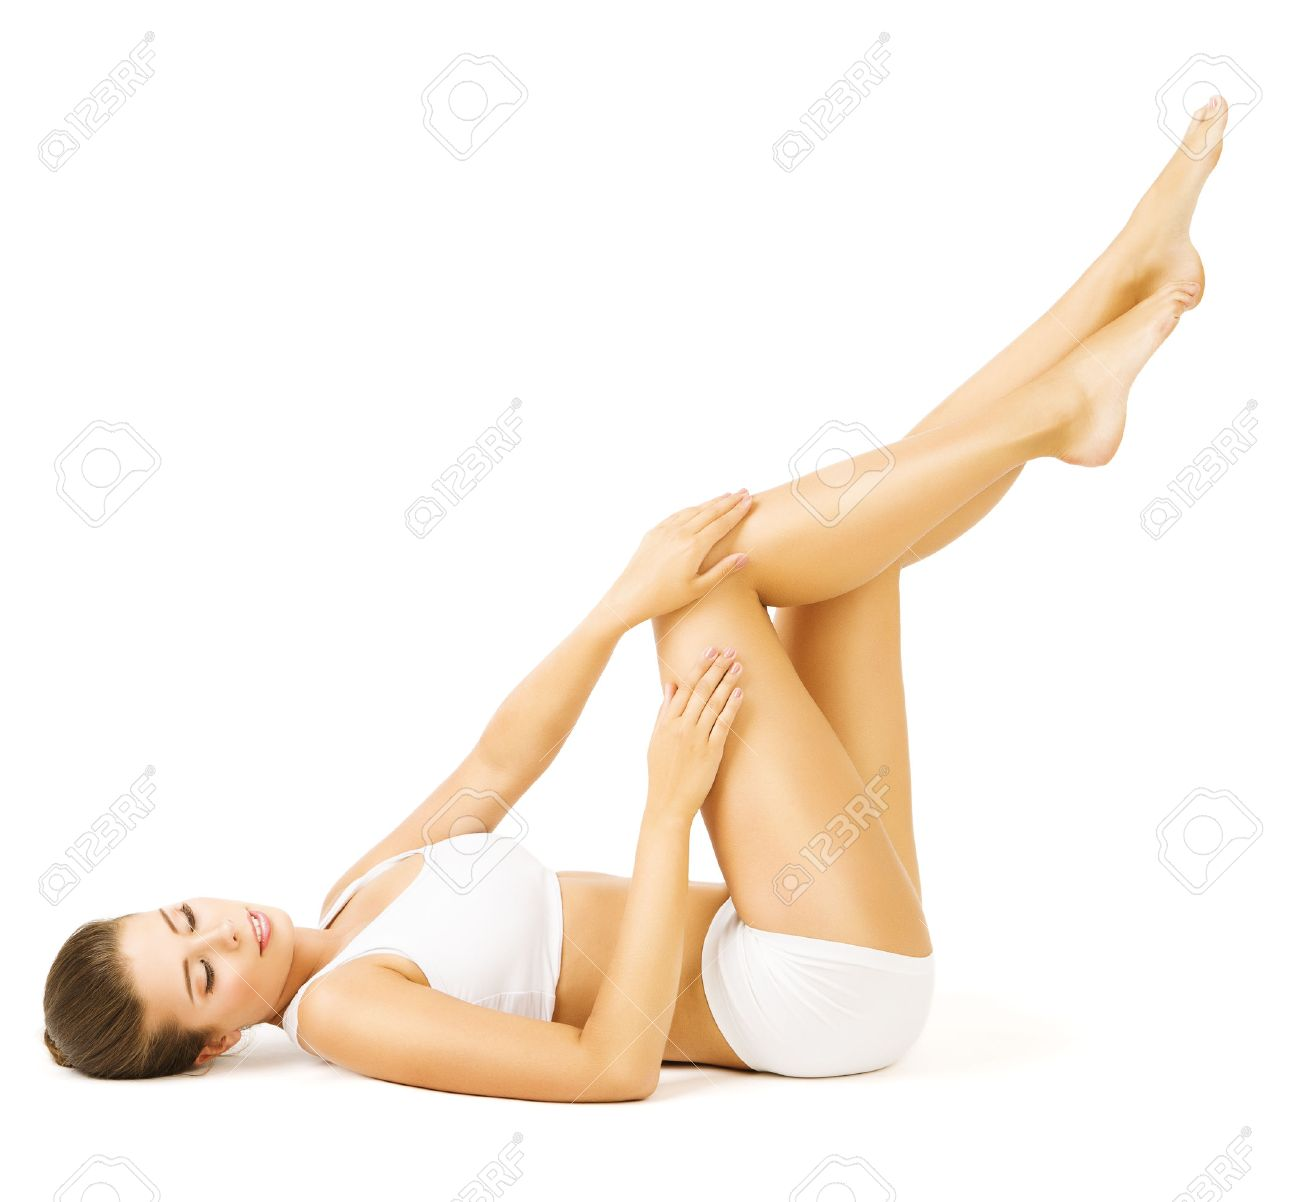 Woman Body Beauty, Lying Girl Touch Legs Skin, White Cotton Underwear Stock Photo - 43207089